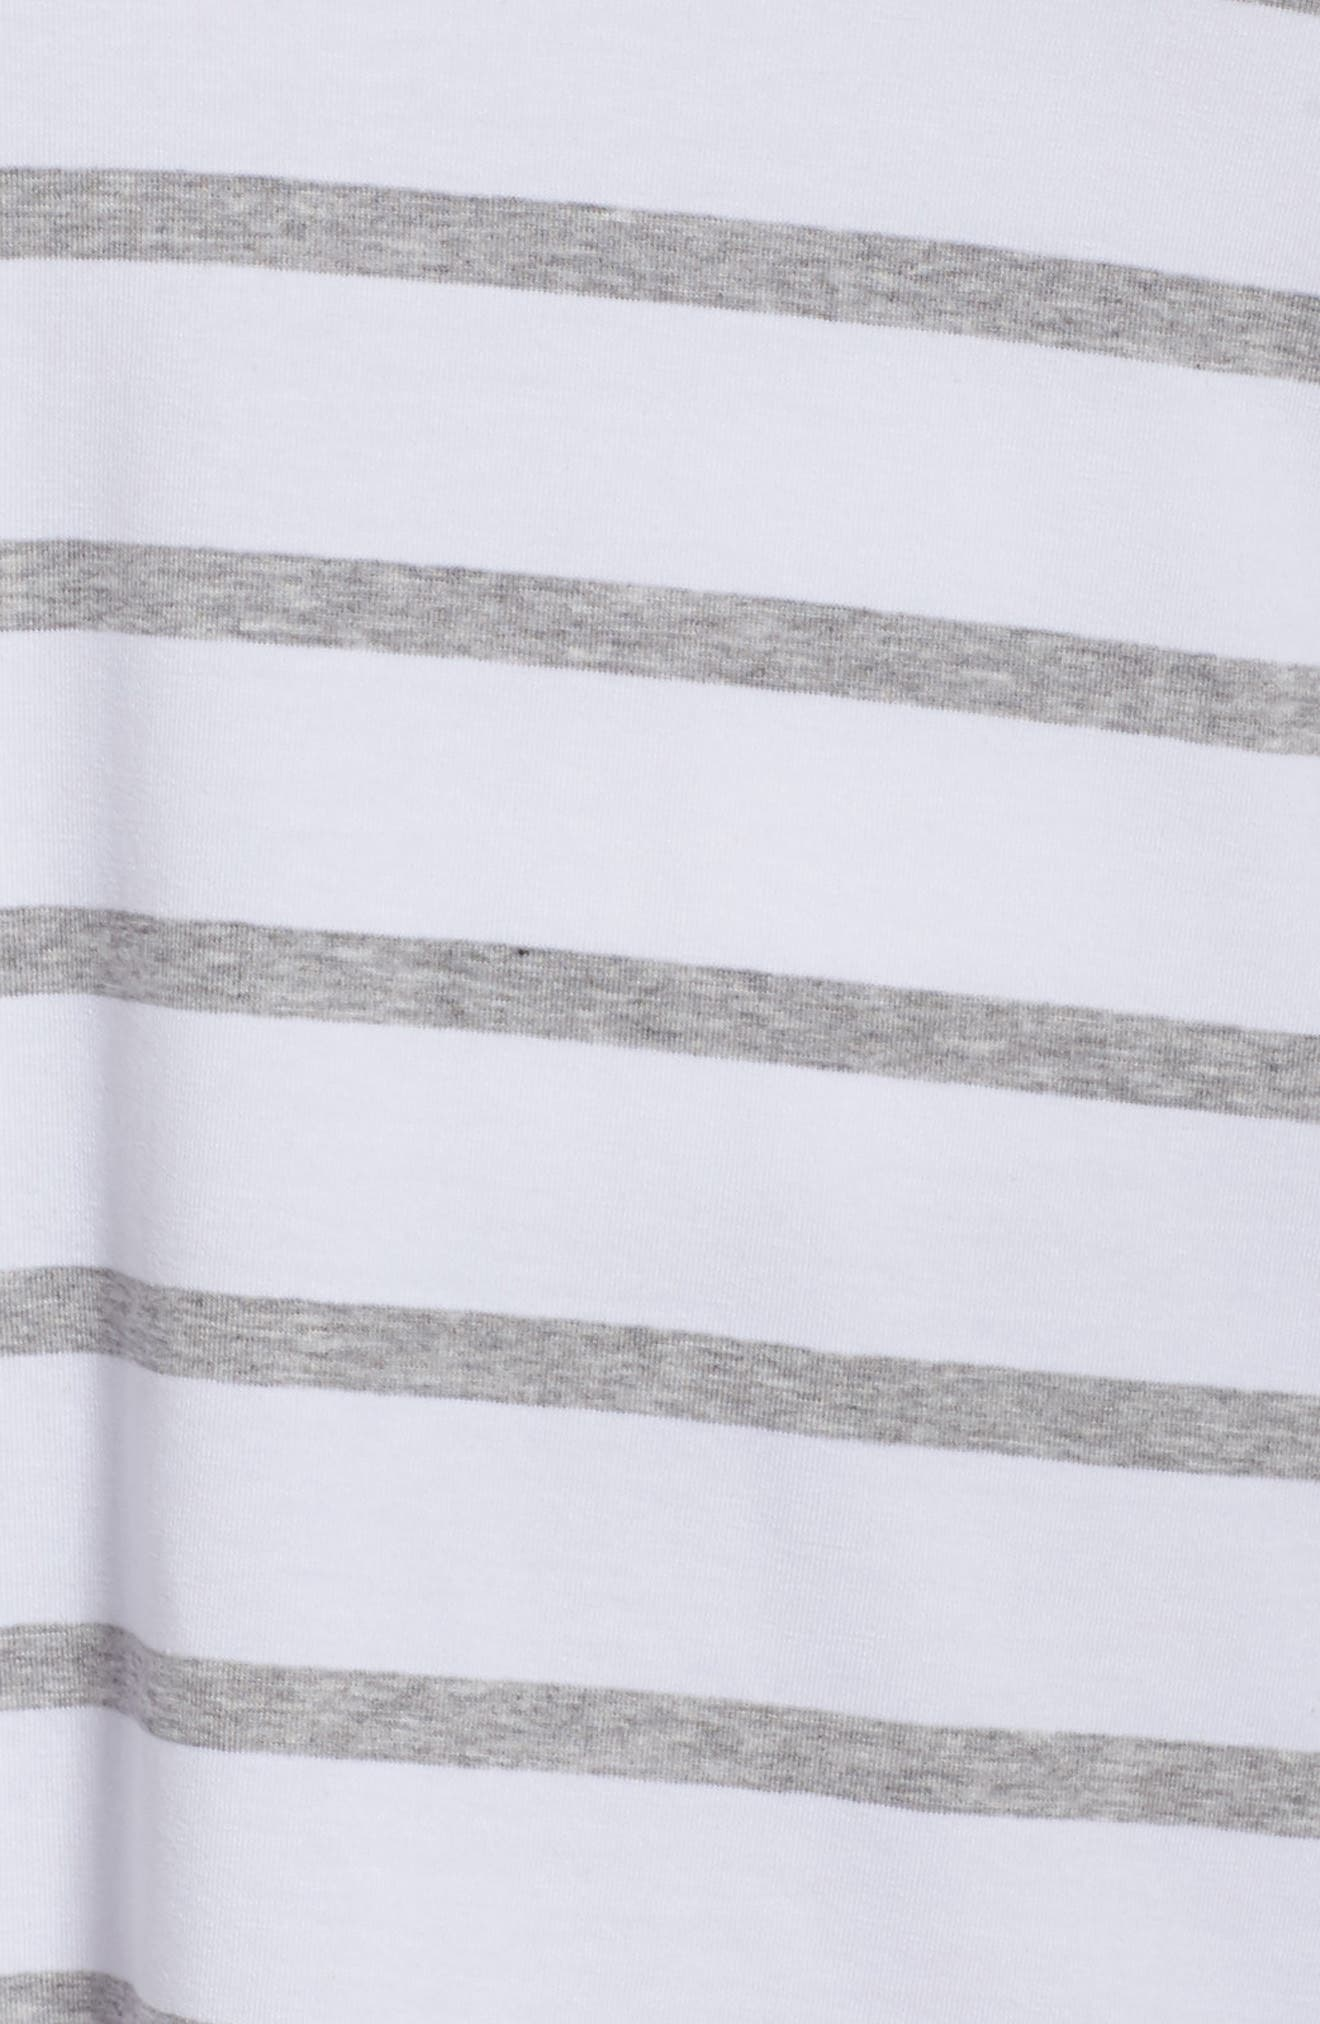 Stripe Stretch Tencel<sup>®</sup> Lyocell Top,                             Alternate thumbnail 6, color,                             131